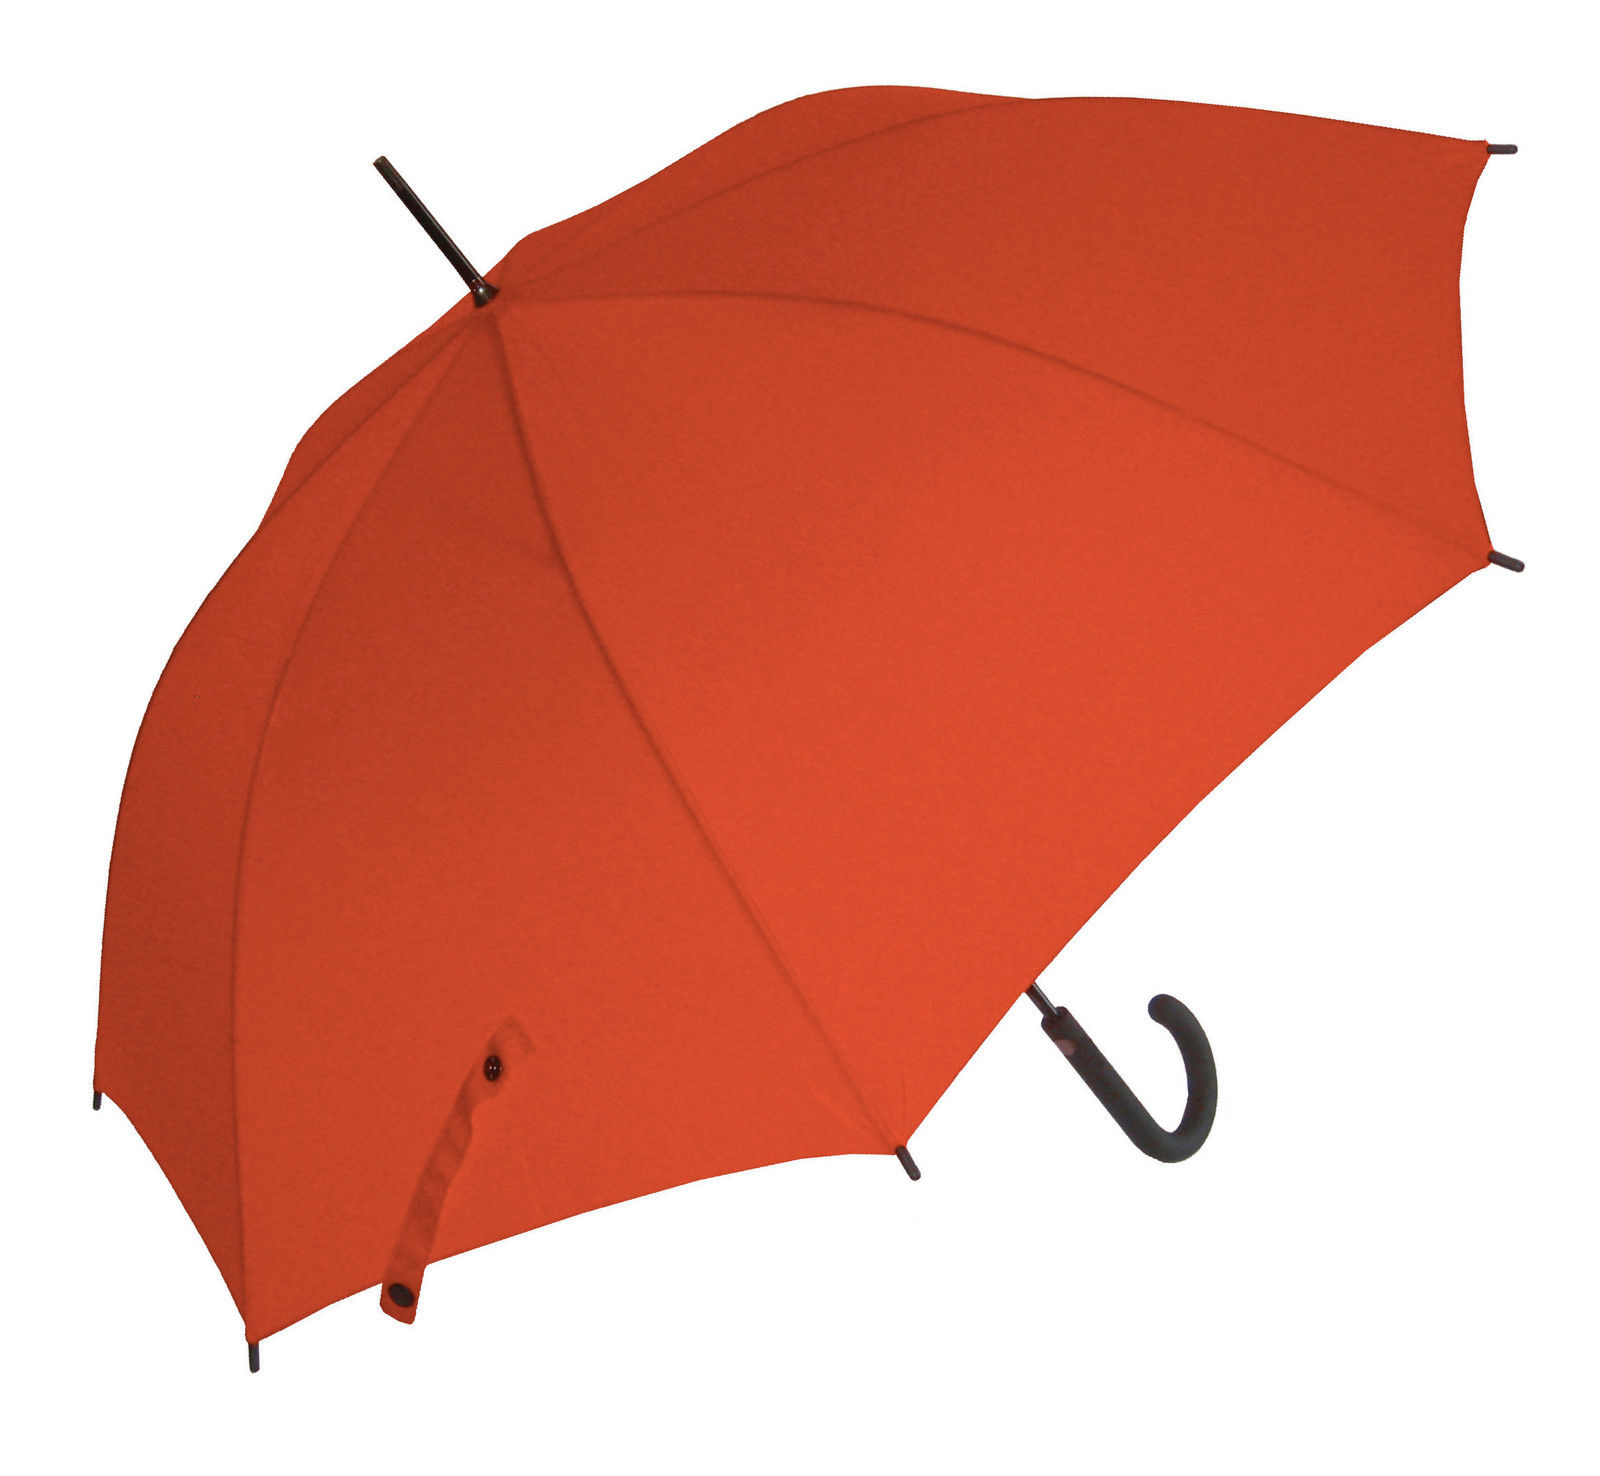 Regenschirm s.Oliver orange Ø105 cm